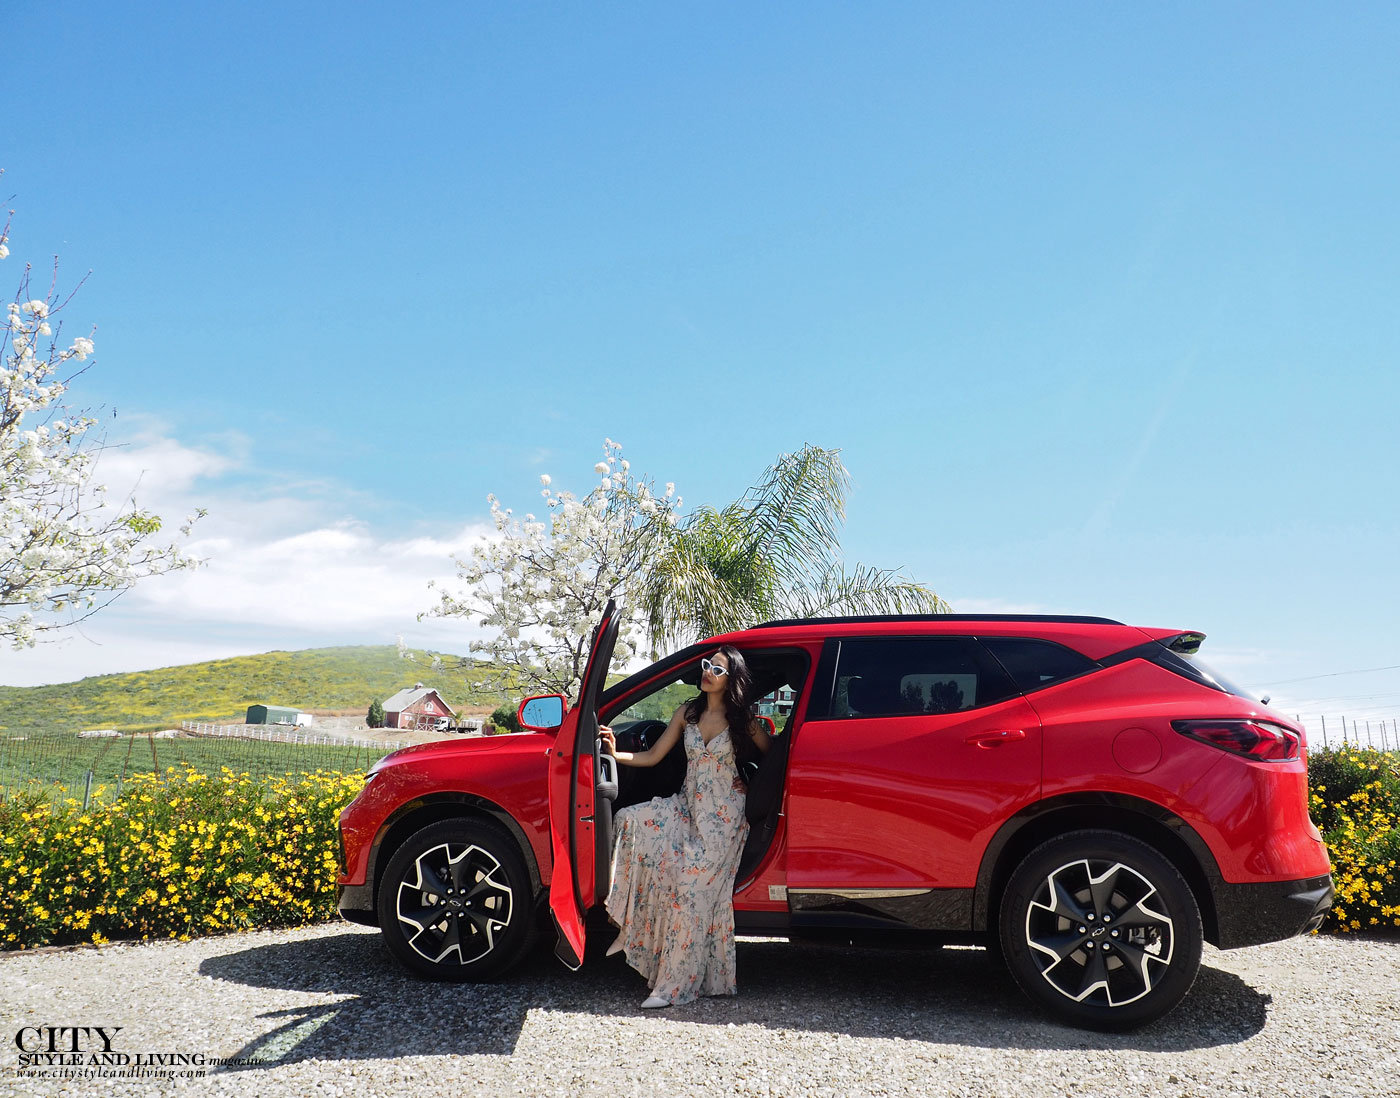 City Style and Living Magazine Summer 2019 Travel Southern California Temecula Chevrolet Blazer sitting